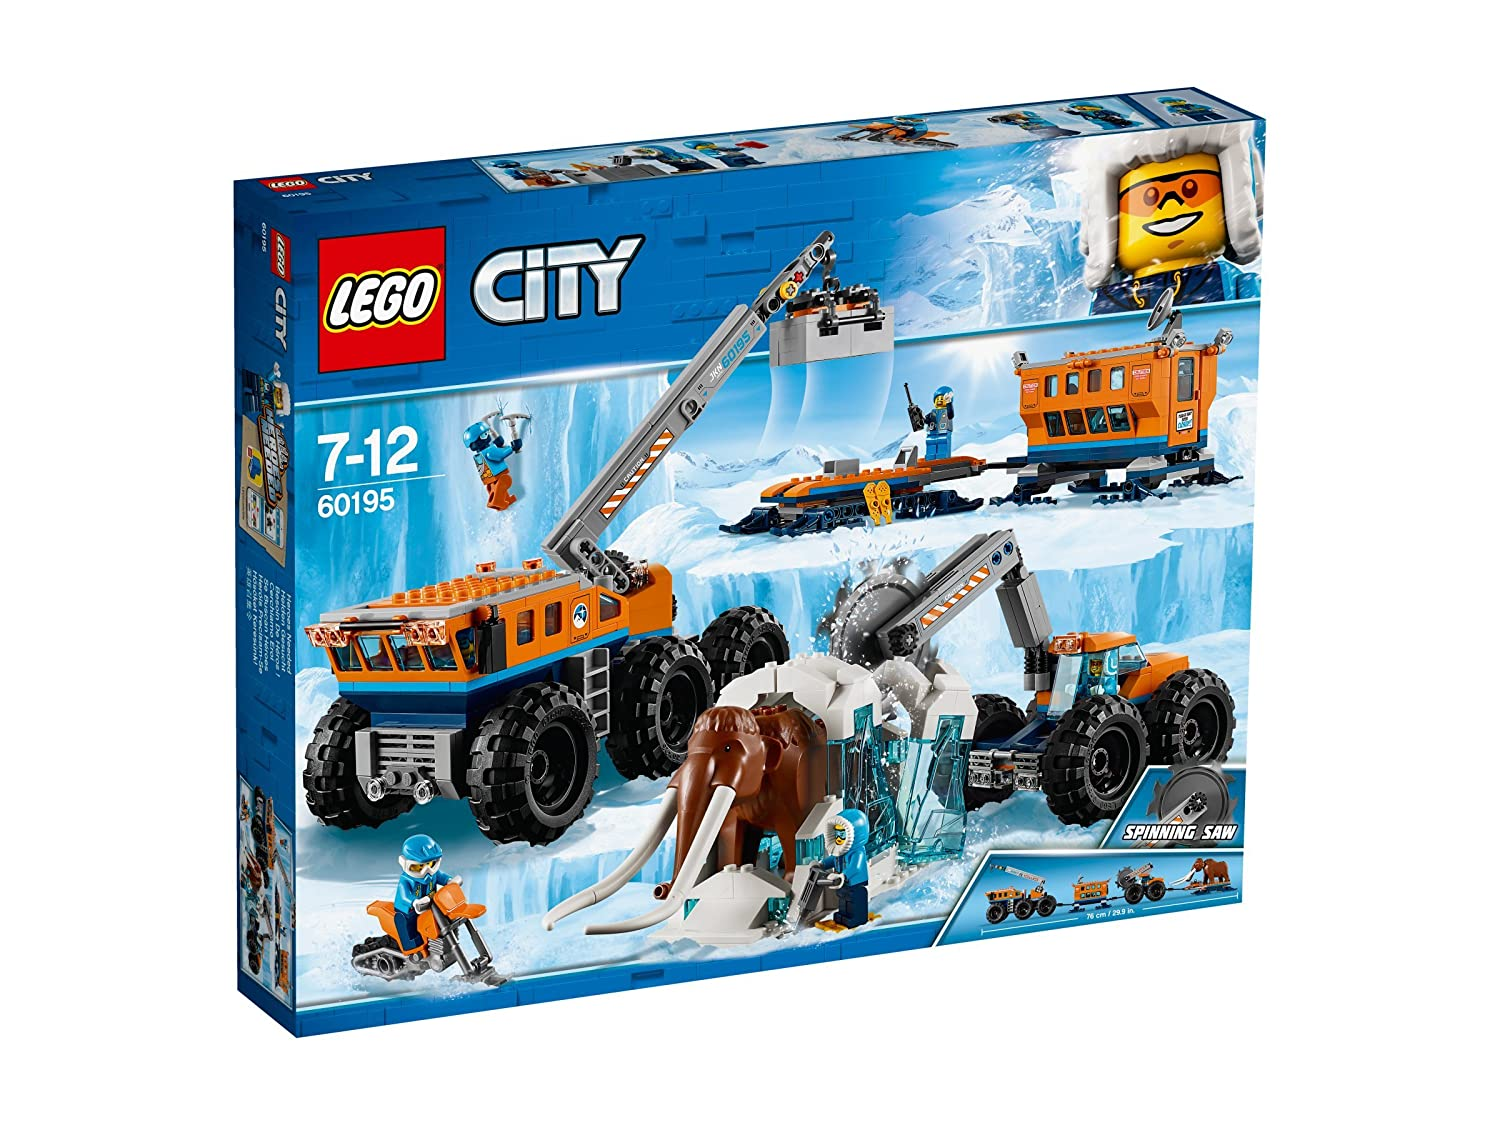 Lego City Base Mobile di esplorazione artica, 60195 No Name